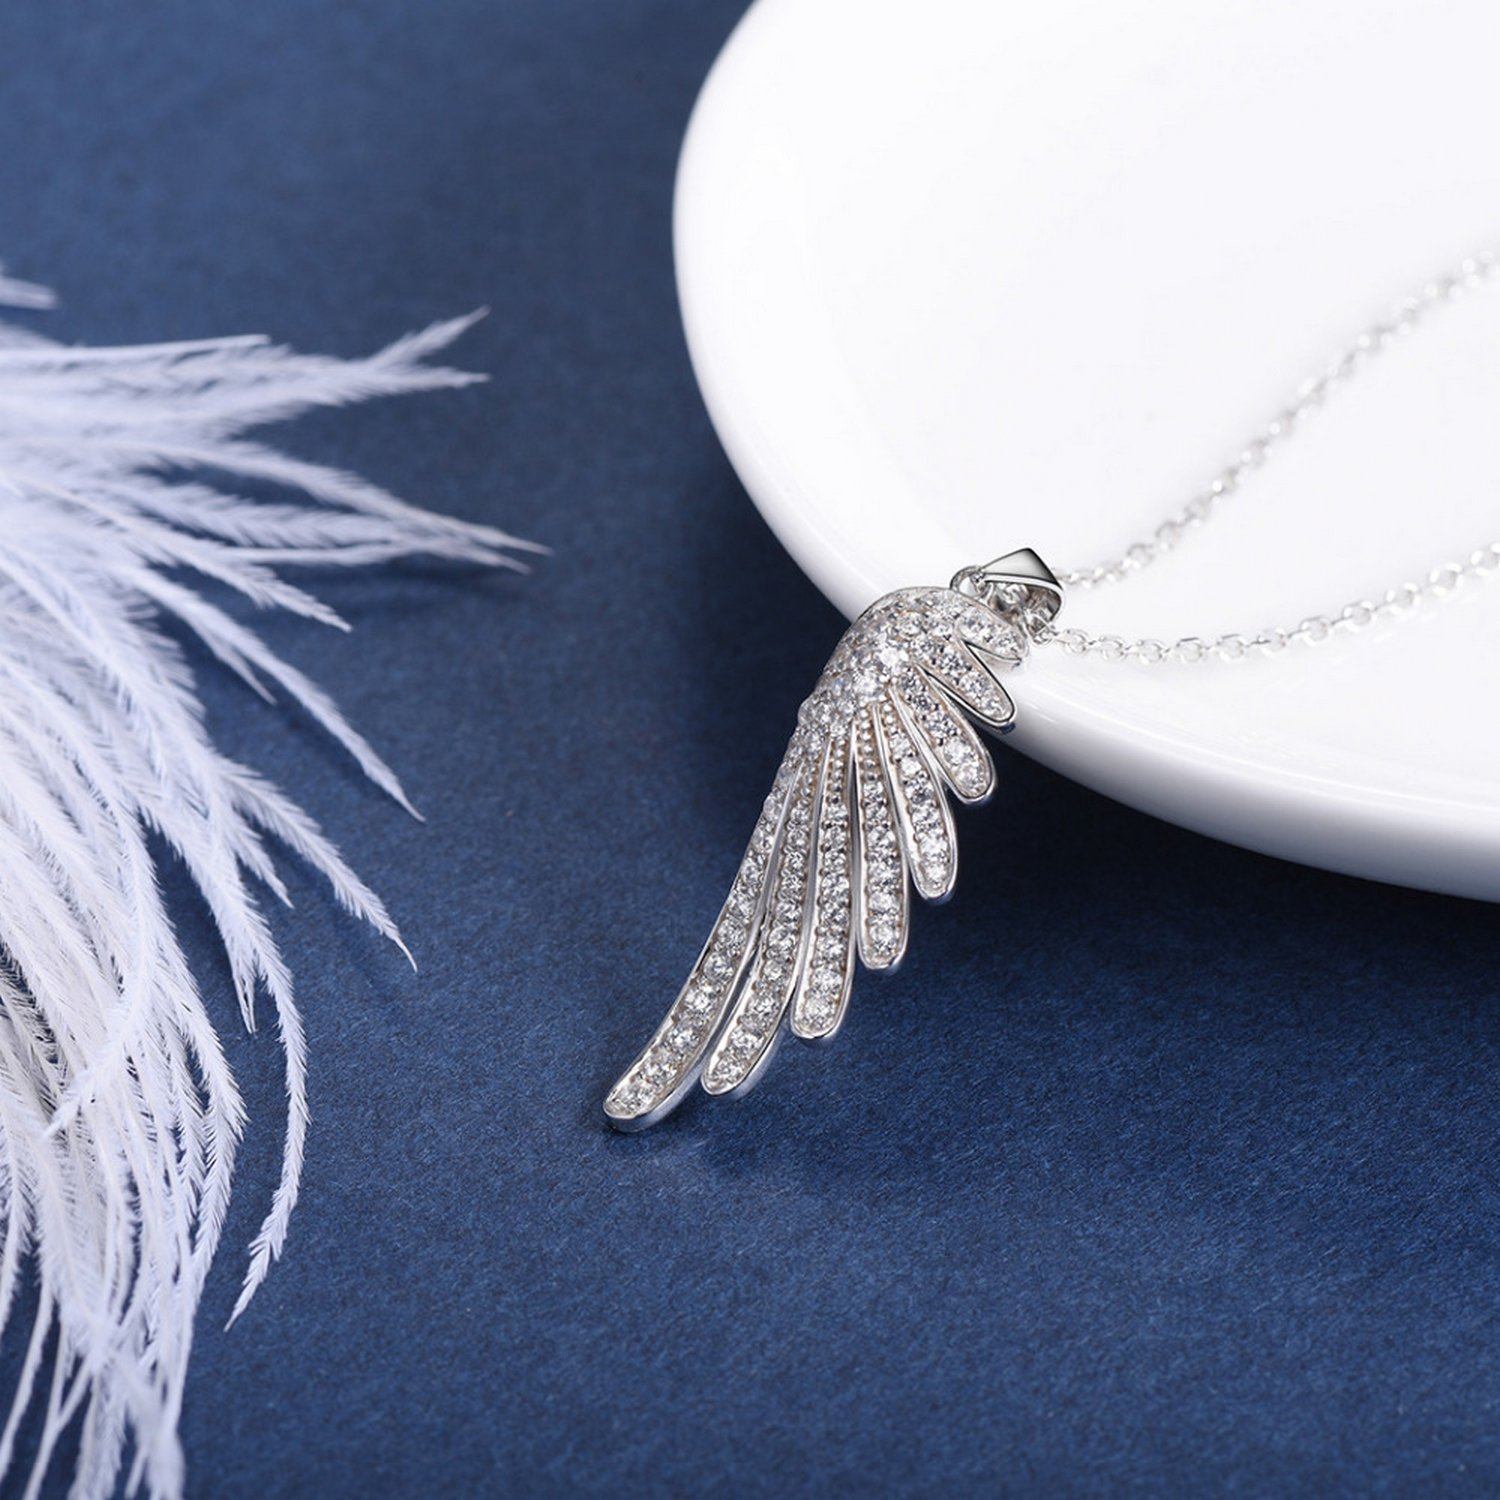 CS-DB Jewelry Silver Cubic Zirconia Angel Wing Jewelry Chain Charm Pendants Necklaces